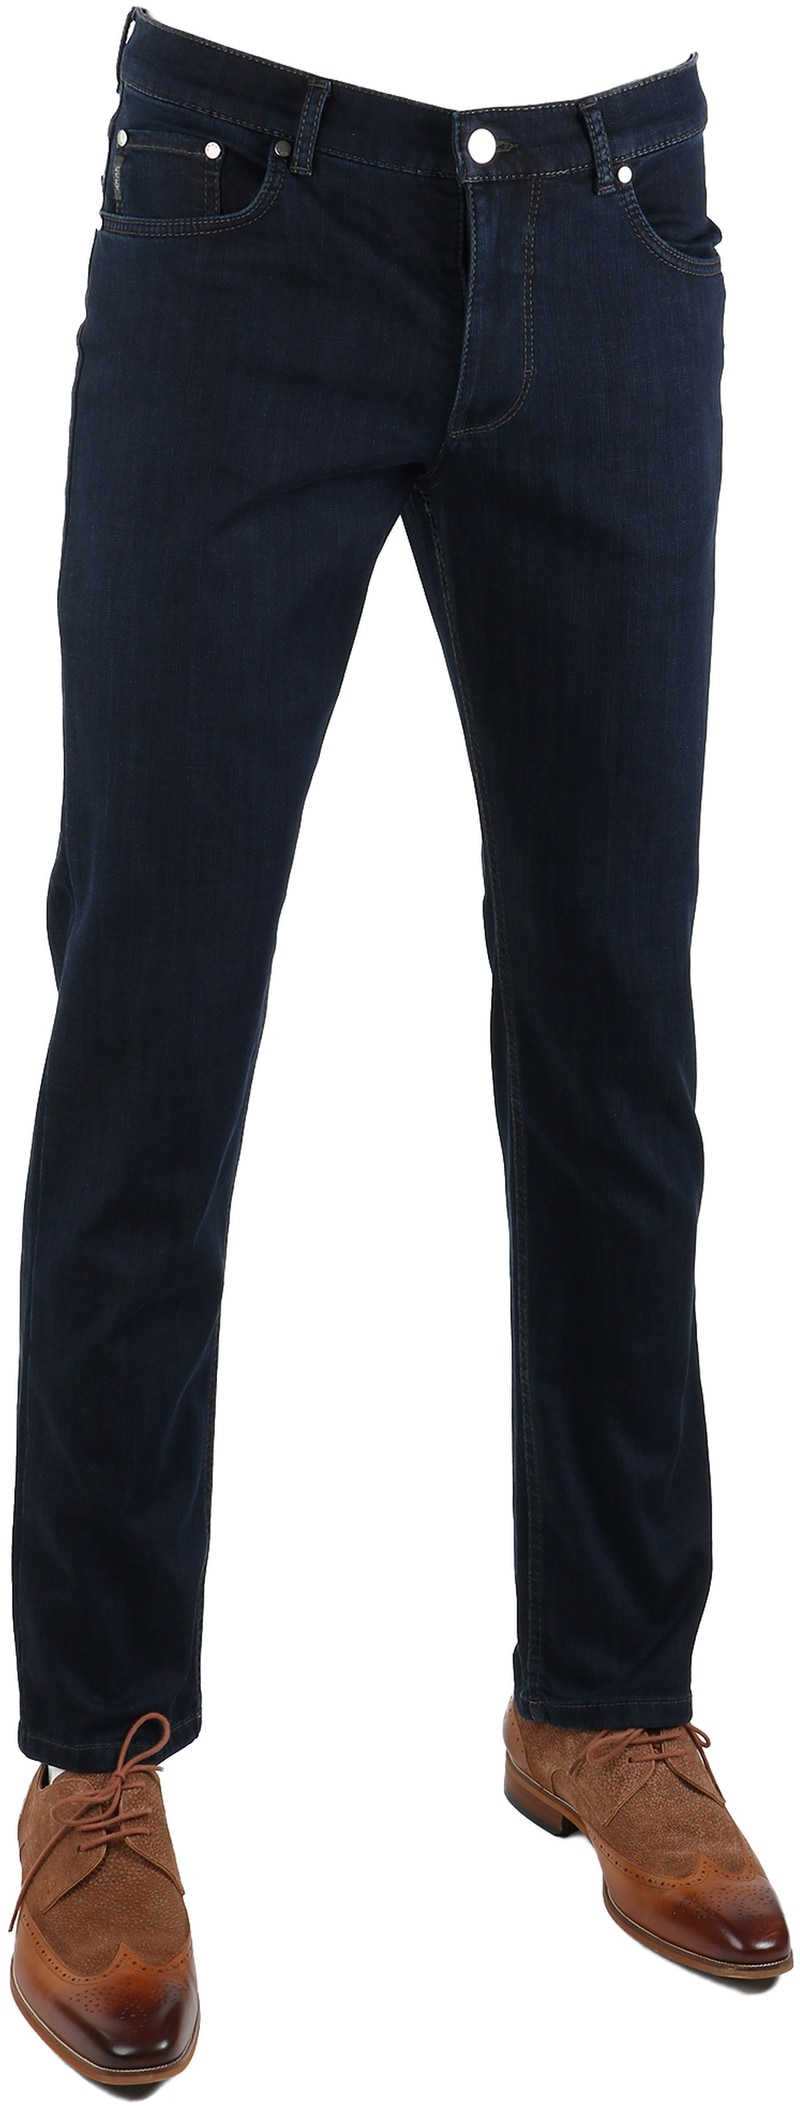 Brax Cooper Denim Jeans Dark Five Pocket  online bestellen | Suitable